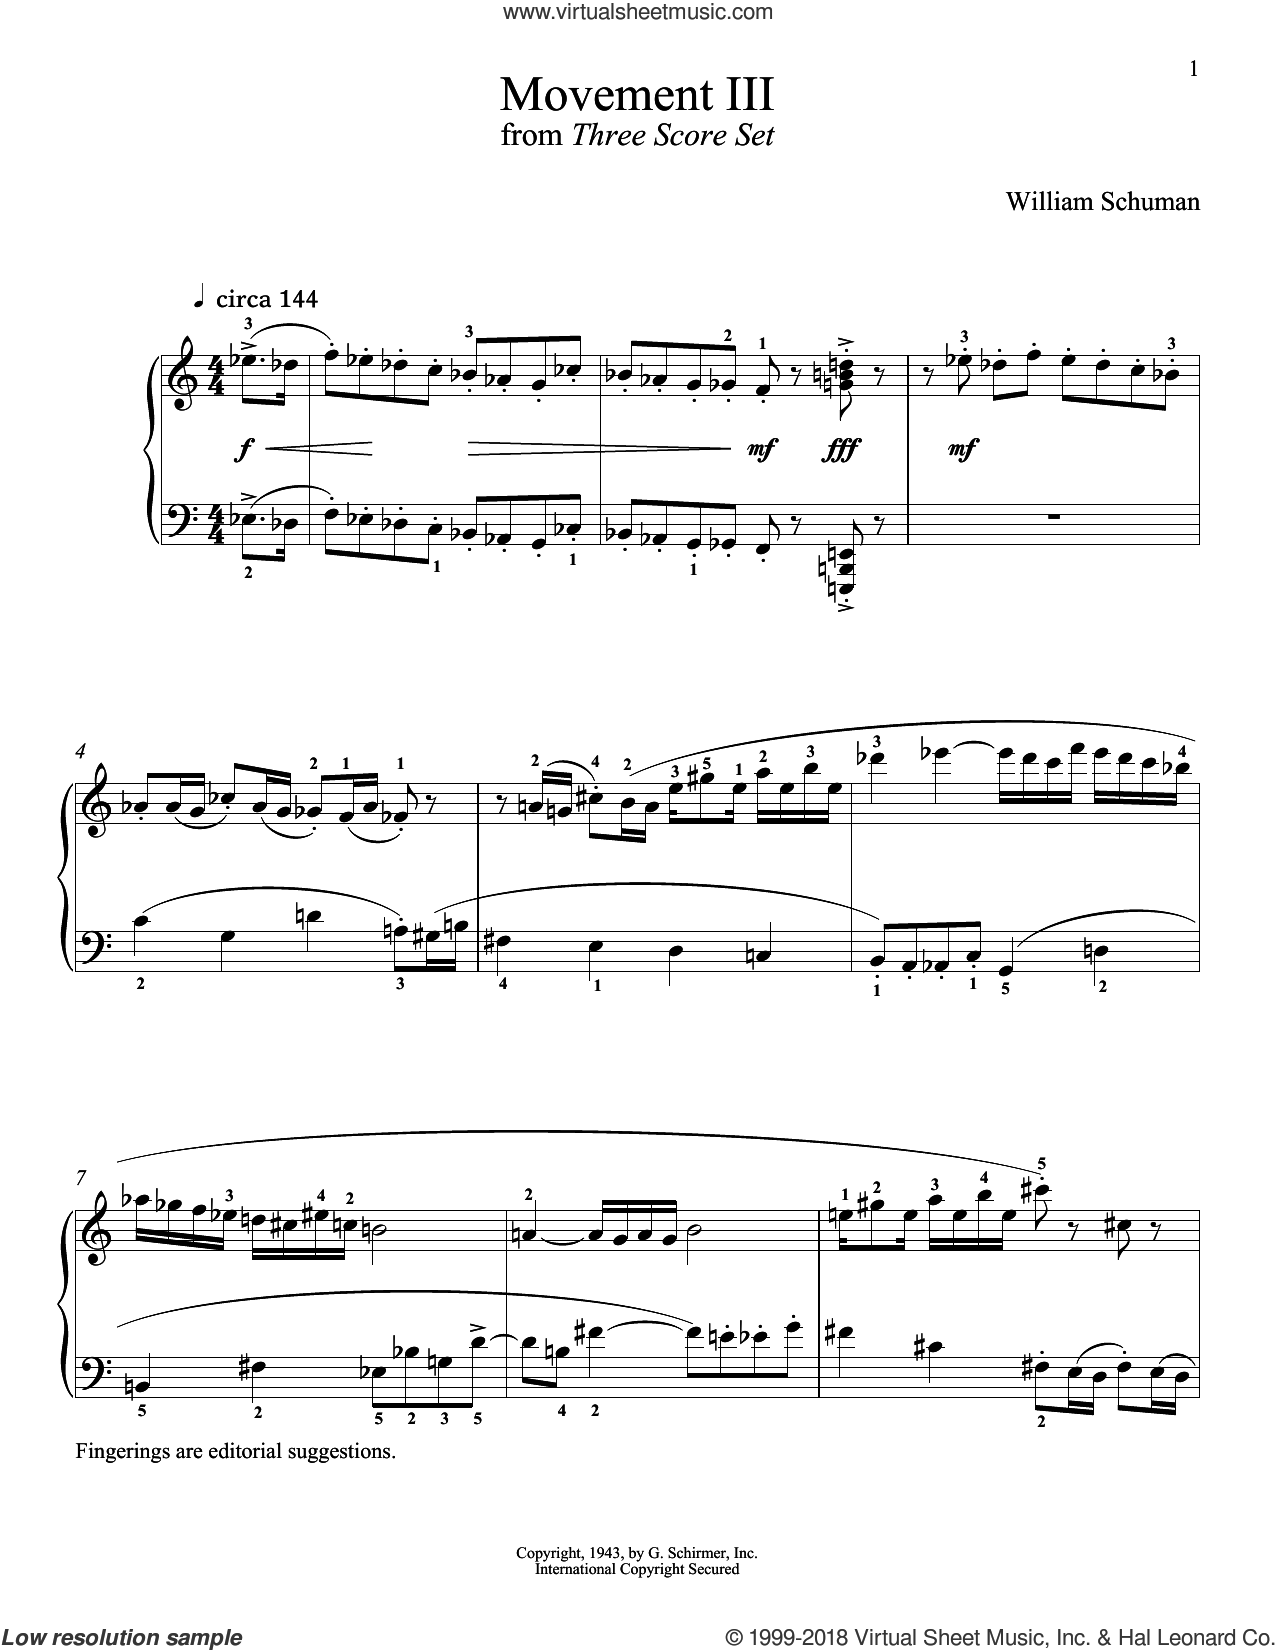 Movement III sheet music for piano solo by William Schuman and Richard Walters, classical score, intermediate skill level